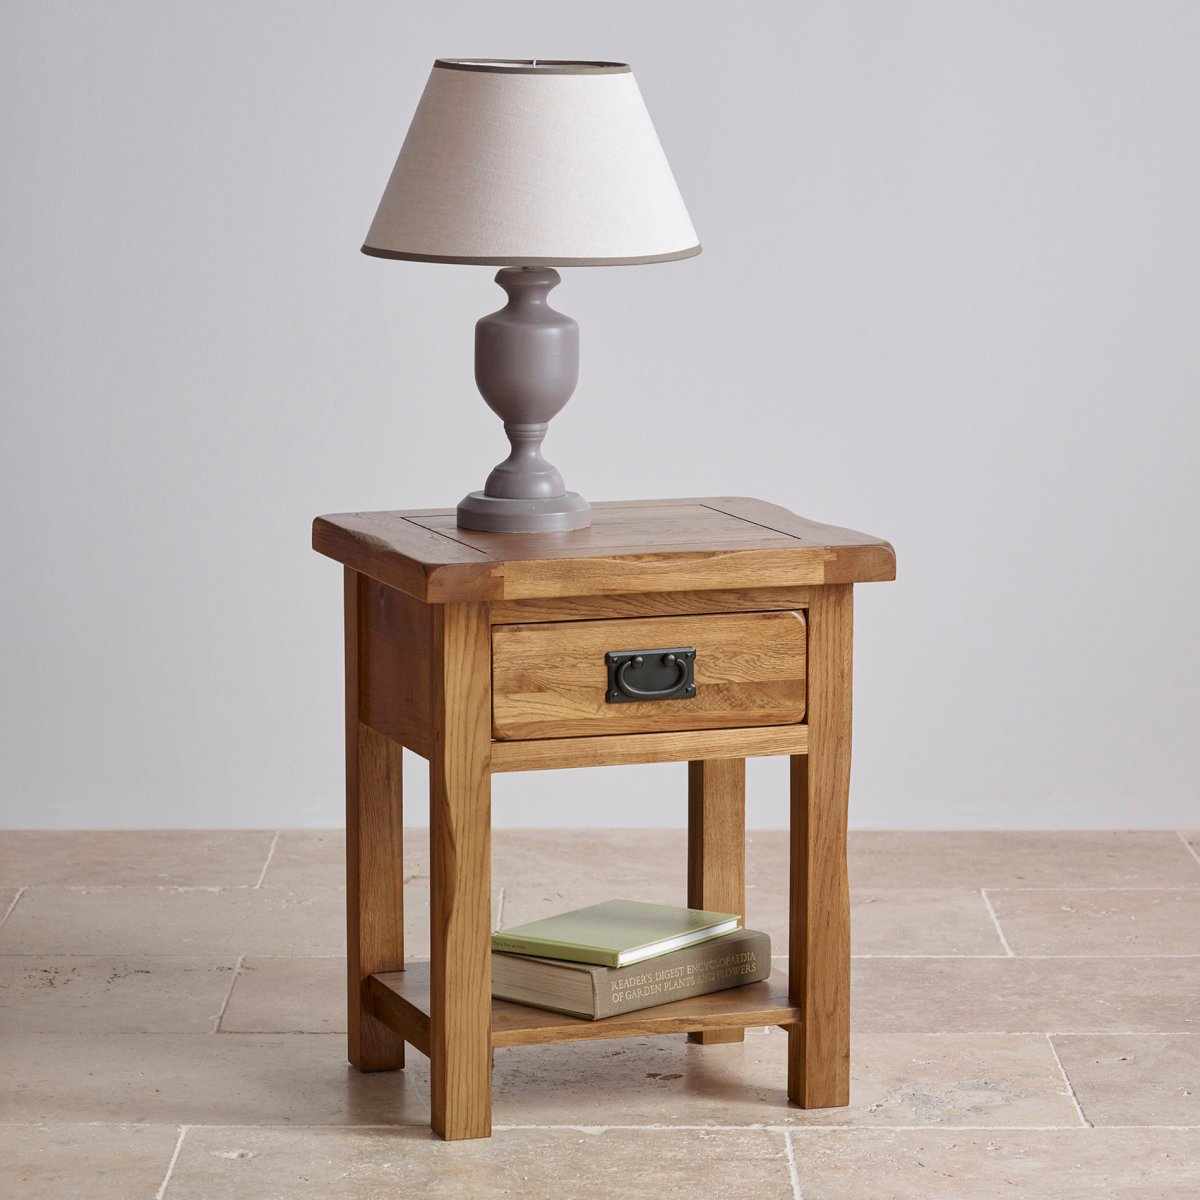 Original rustic lamp table in solid oak oak furniture land for Oak lamp table 60cm high